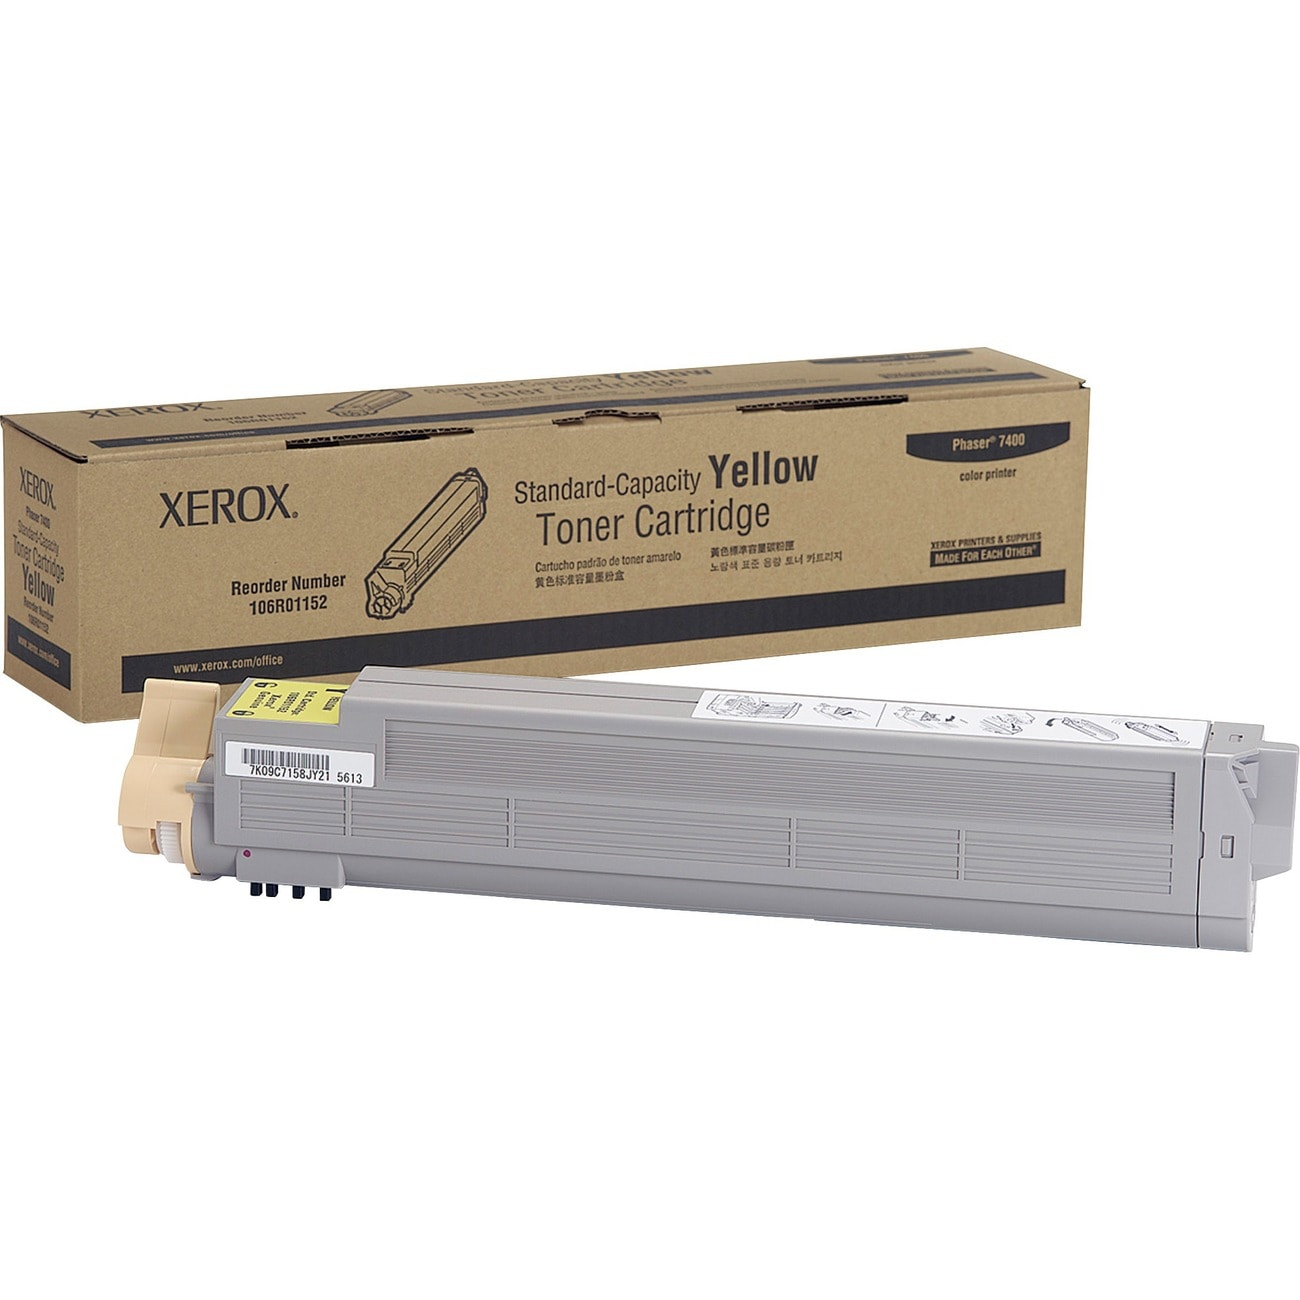 Xerox Yellow Standard-Capacity Toner Cartridge - Thumbnail 0